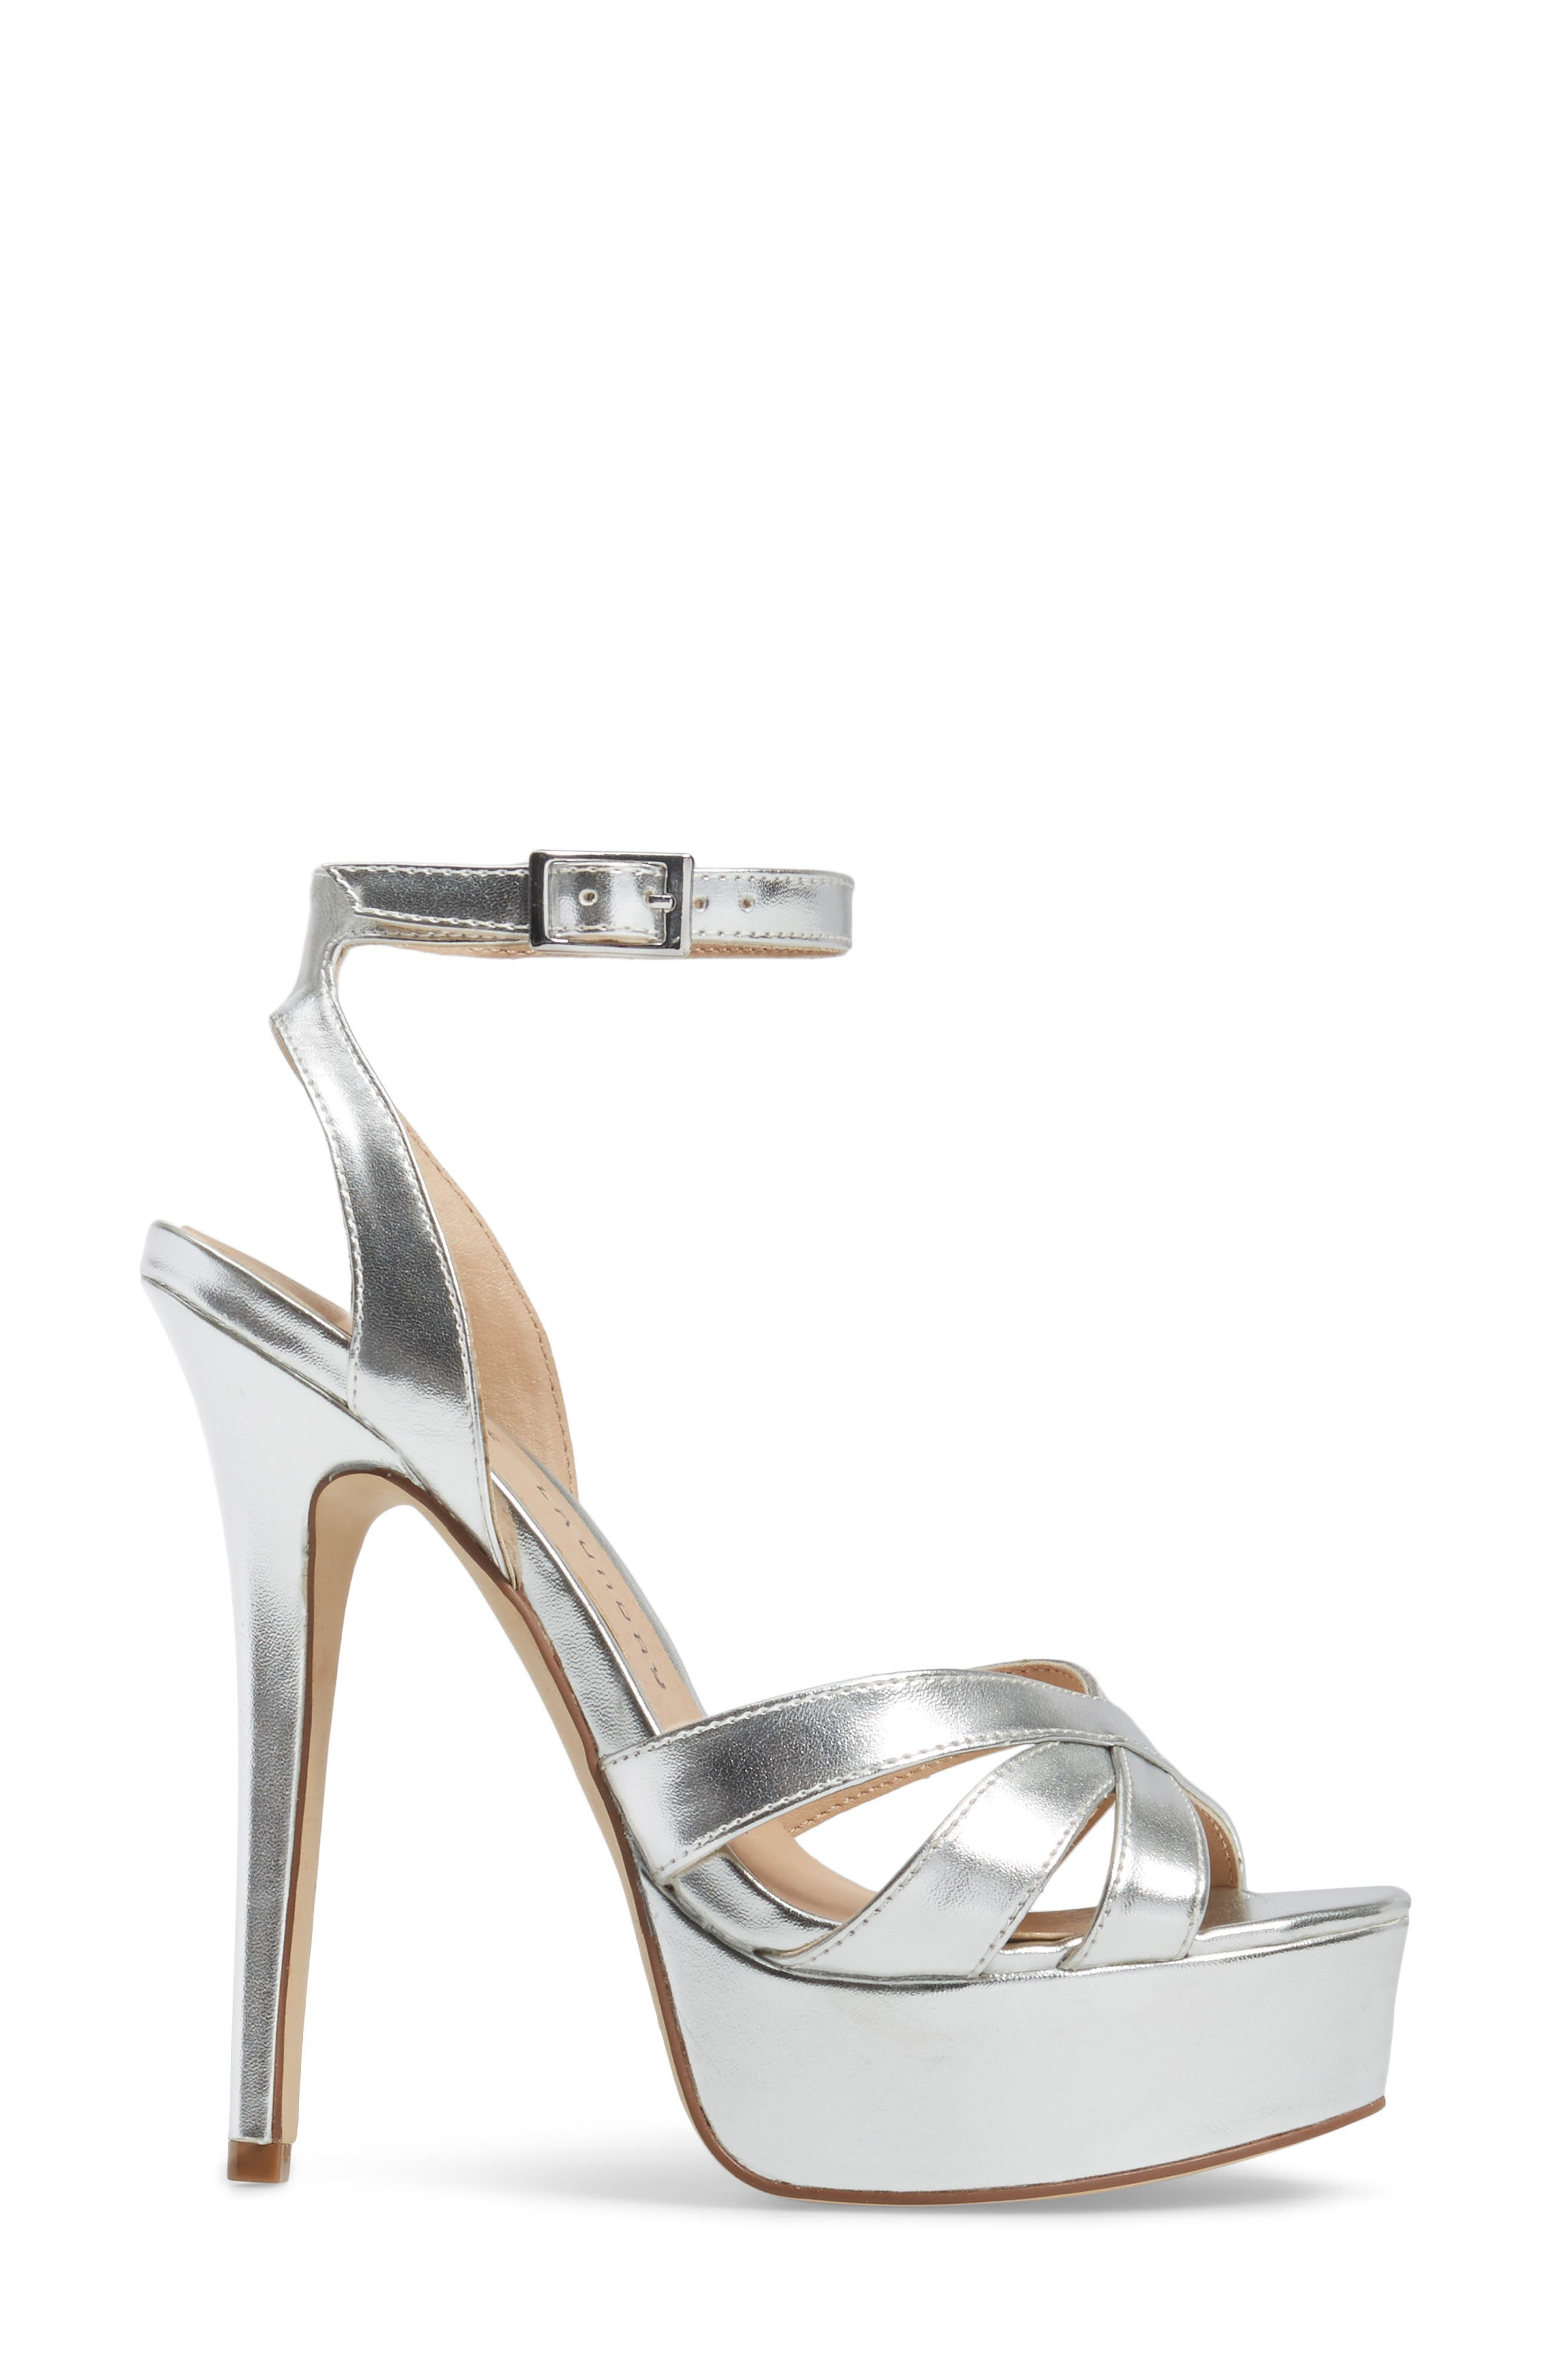 Alyssa Strappy Platform Sandal,                             Alternate thumbnail 3, color,                             040